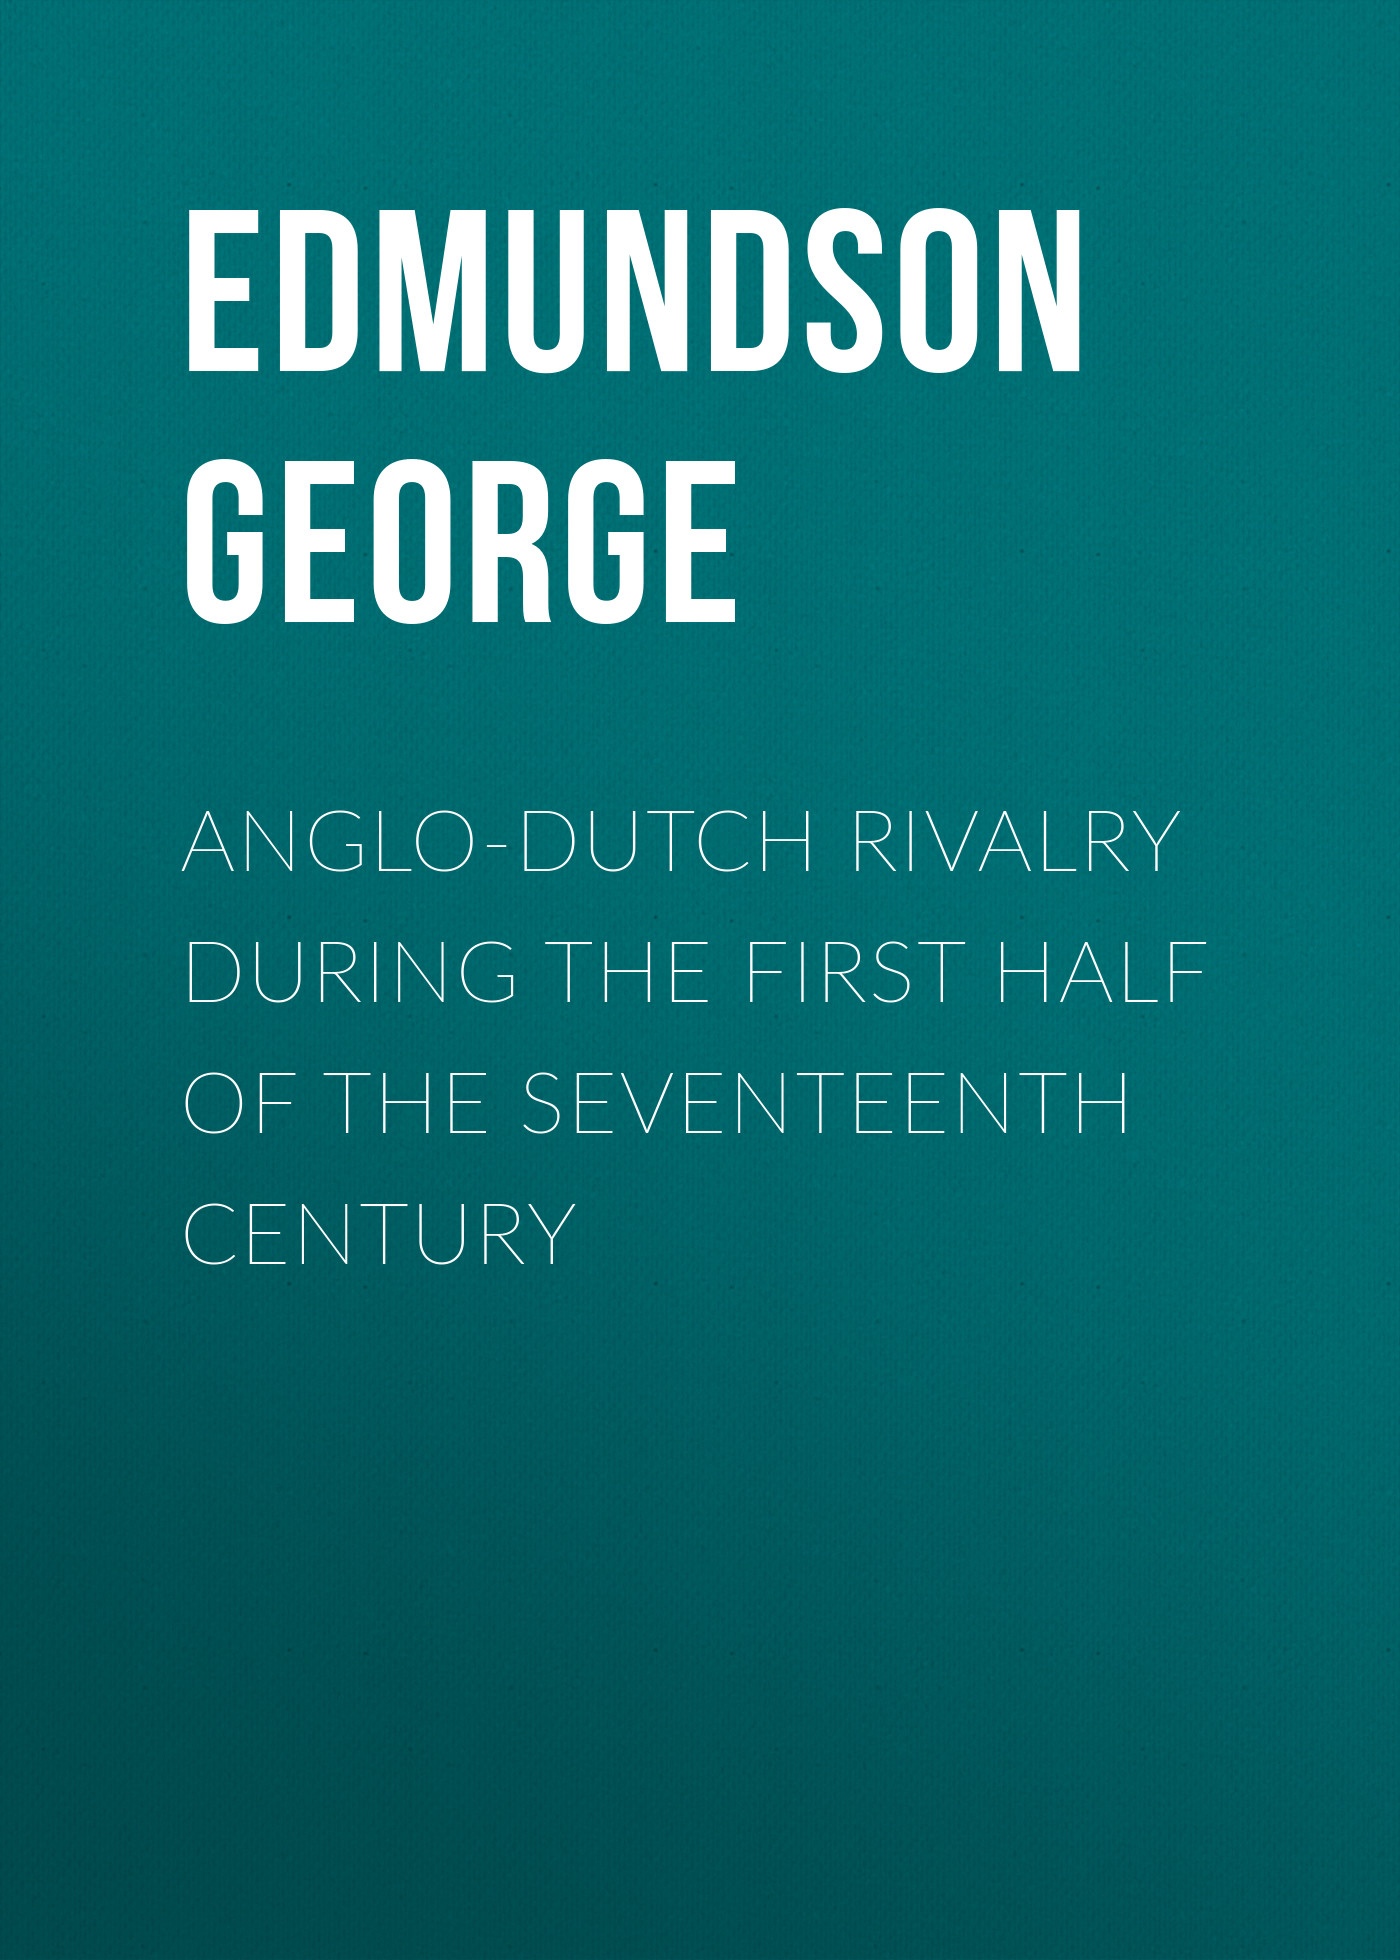 Edmundson George Anglo-Dutch Rivalry during the First Half of the Seventeenth Century 16 single c500 europe b250k associated potentiometer shaft length of 20 half rib 8mm